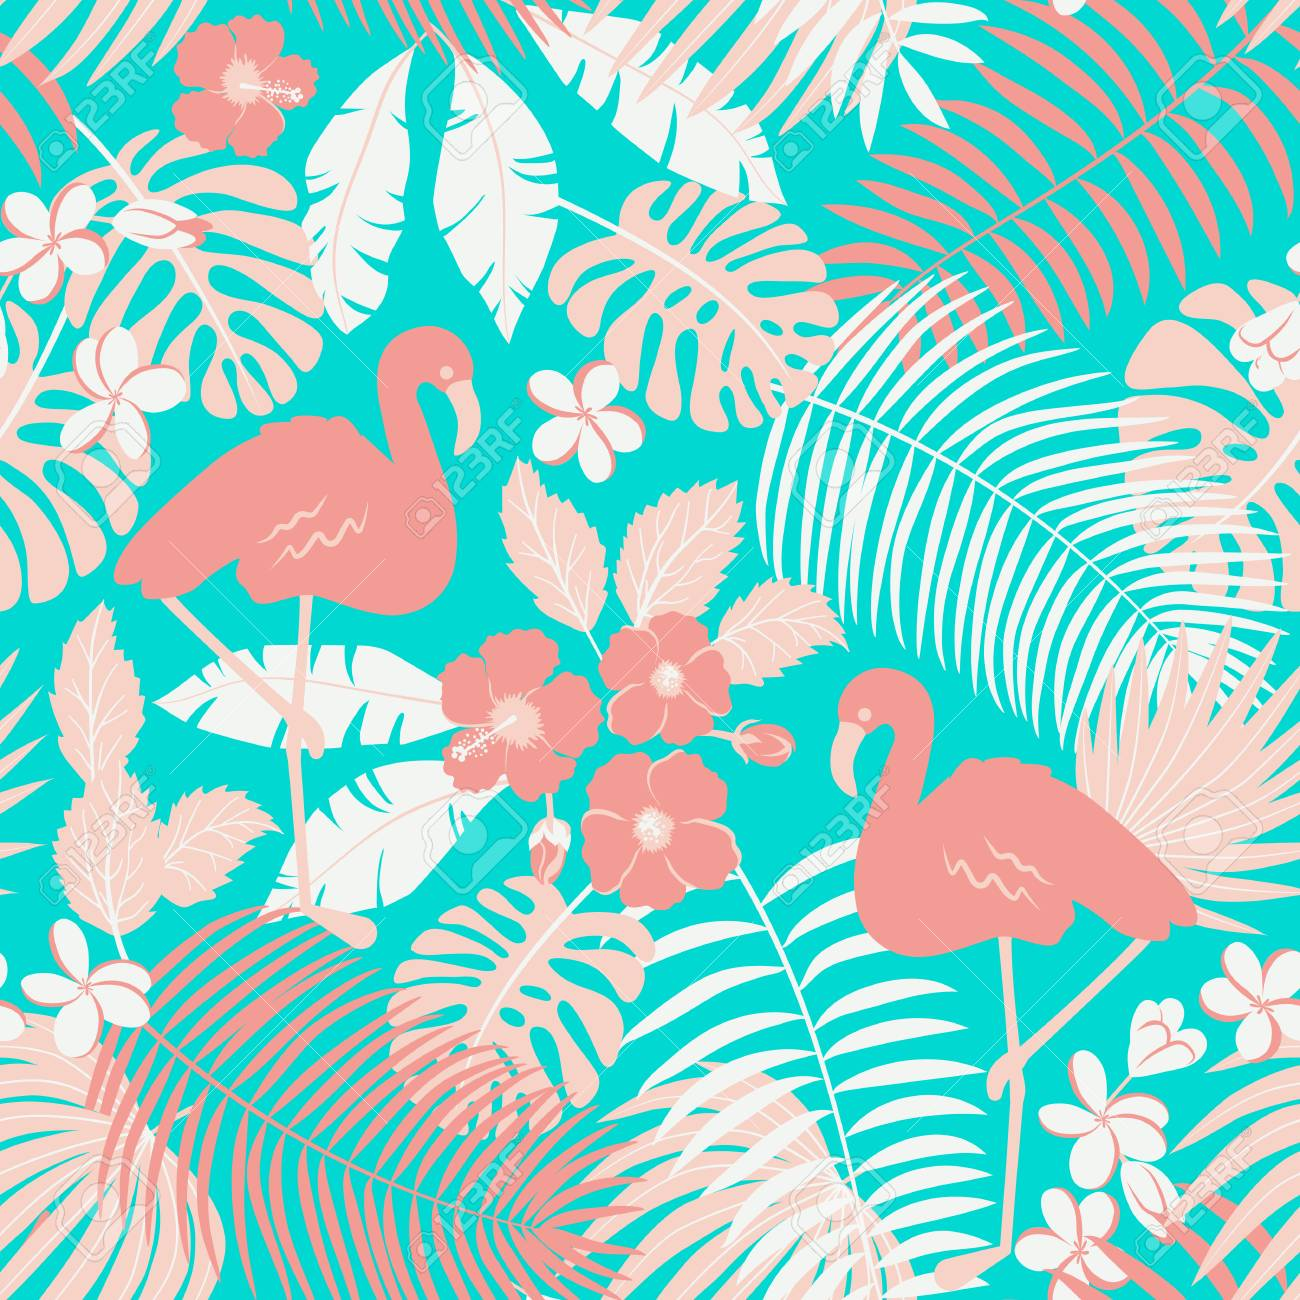 Tropic seamless pattern with flamingo, palms and flowers - 122910615